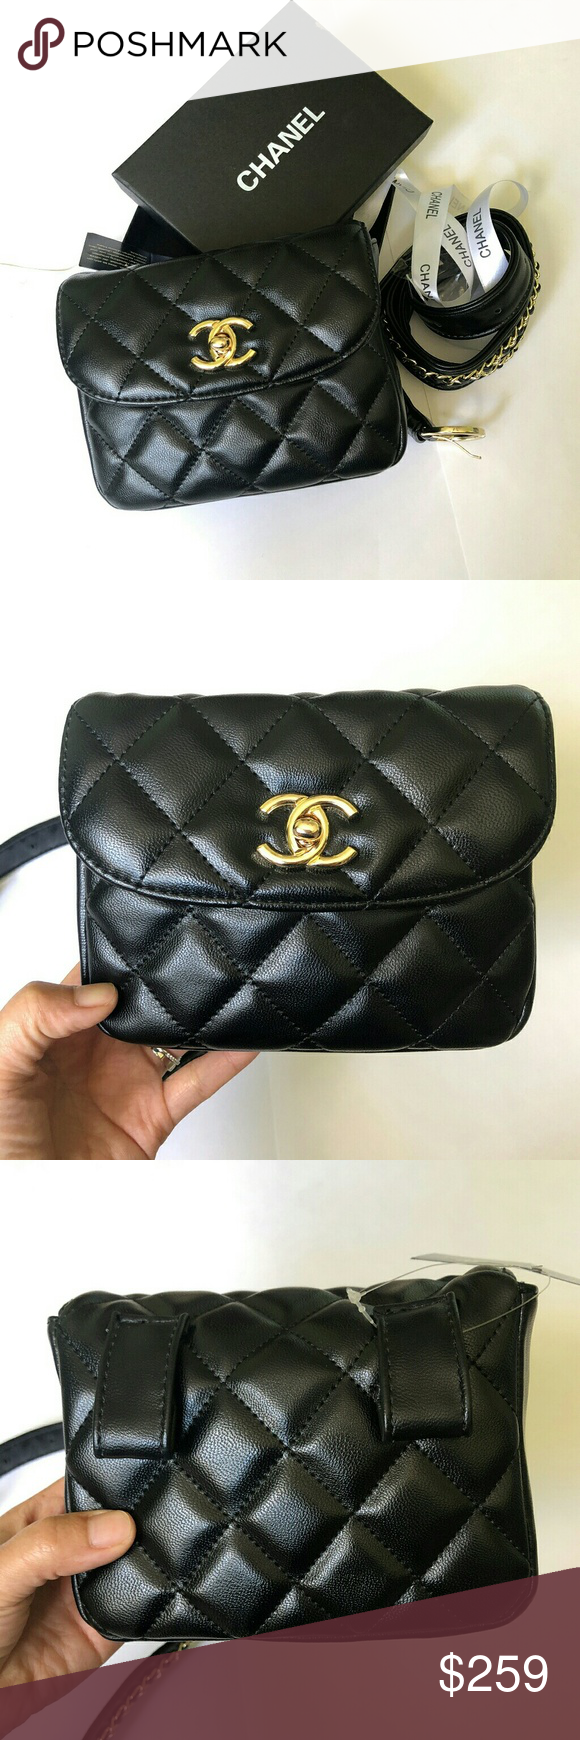 d4620fac7fa7 New Chanel VIP gift Fanny pack belt bag Brand new Authentic Chanel VIP gift  Fanny pack